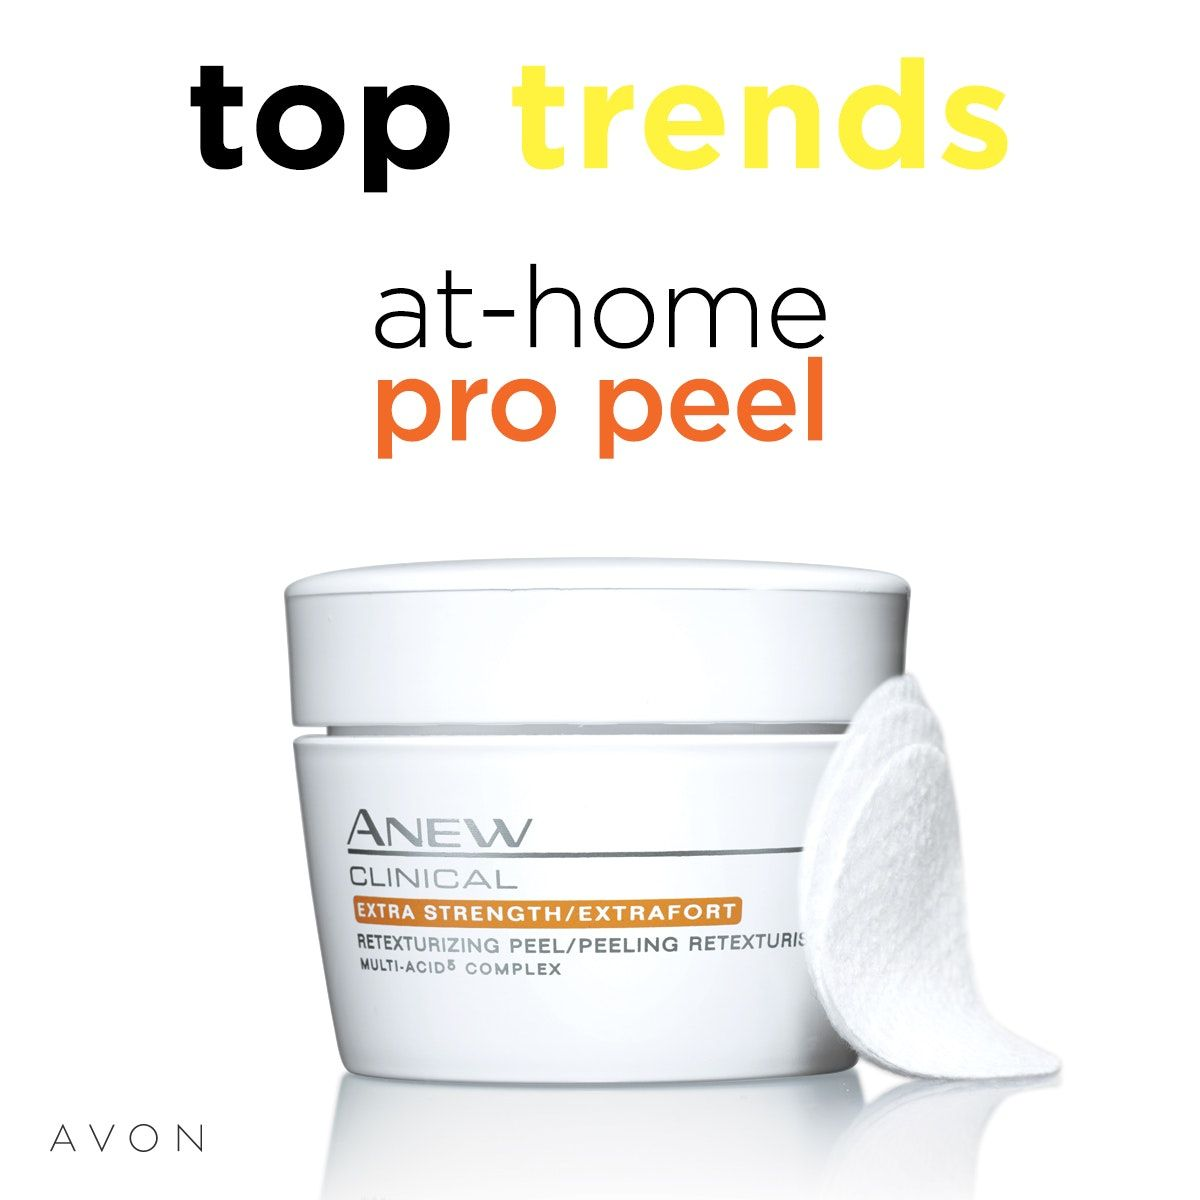 Salon Results At Home Nothing Beats Skin Care Products From Avon Shop My Store Avon Skincare Beauty Fashion Avonlady Anew Clinical Avon Skin Care Avon